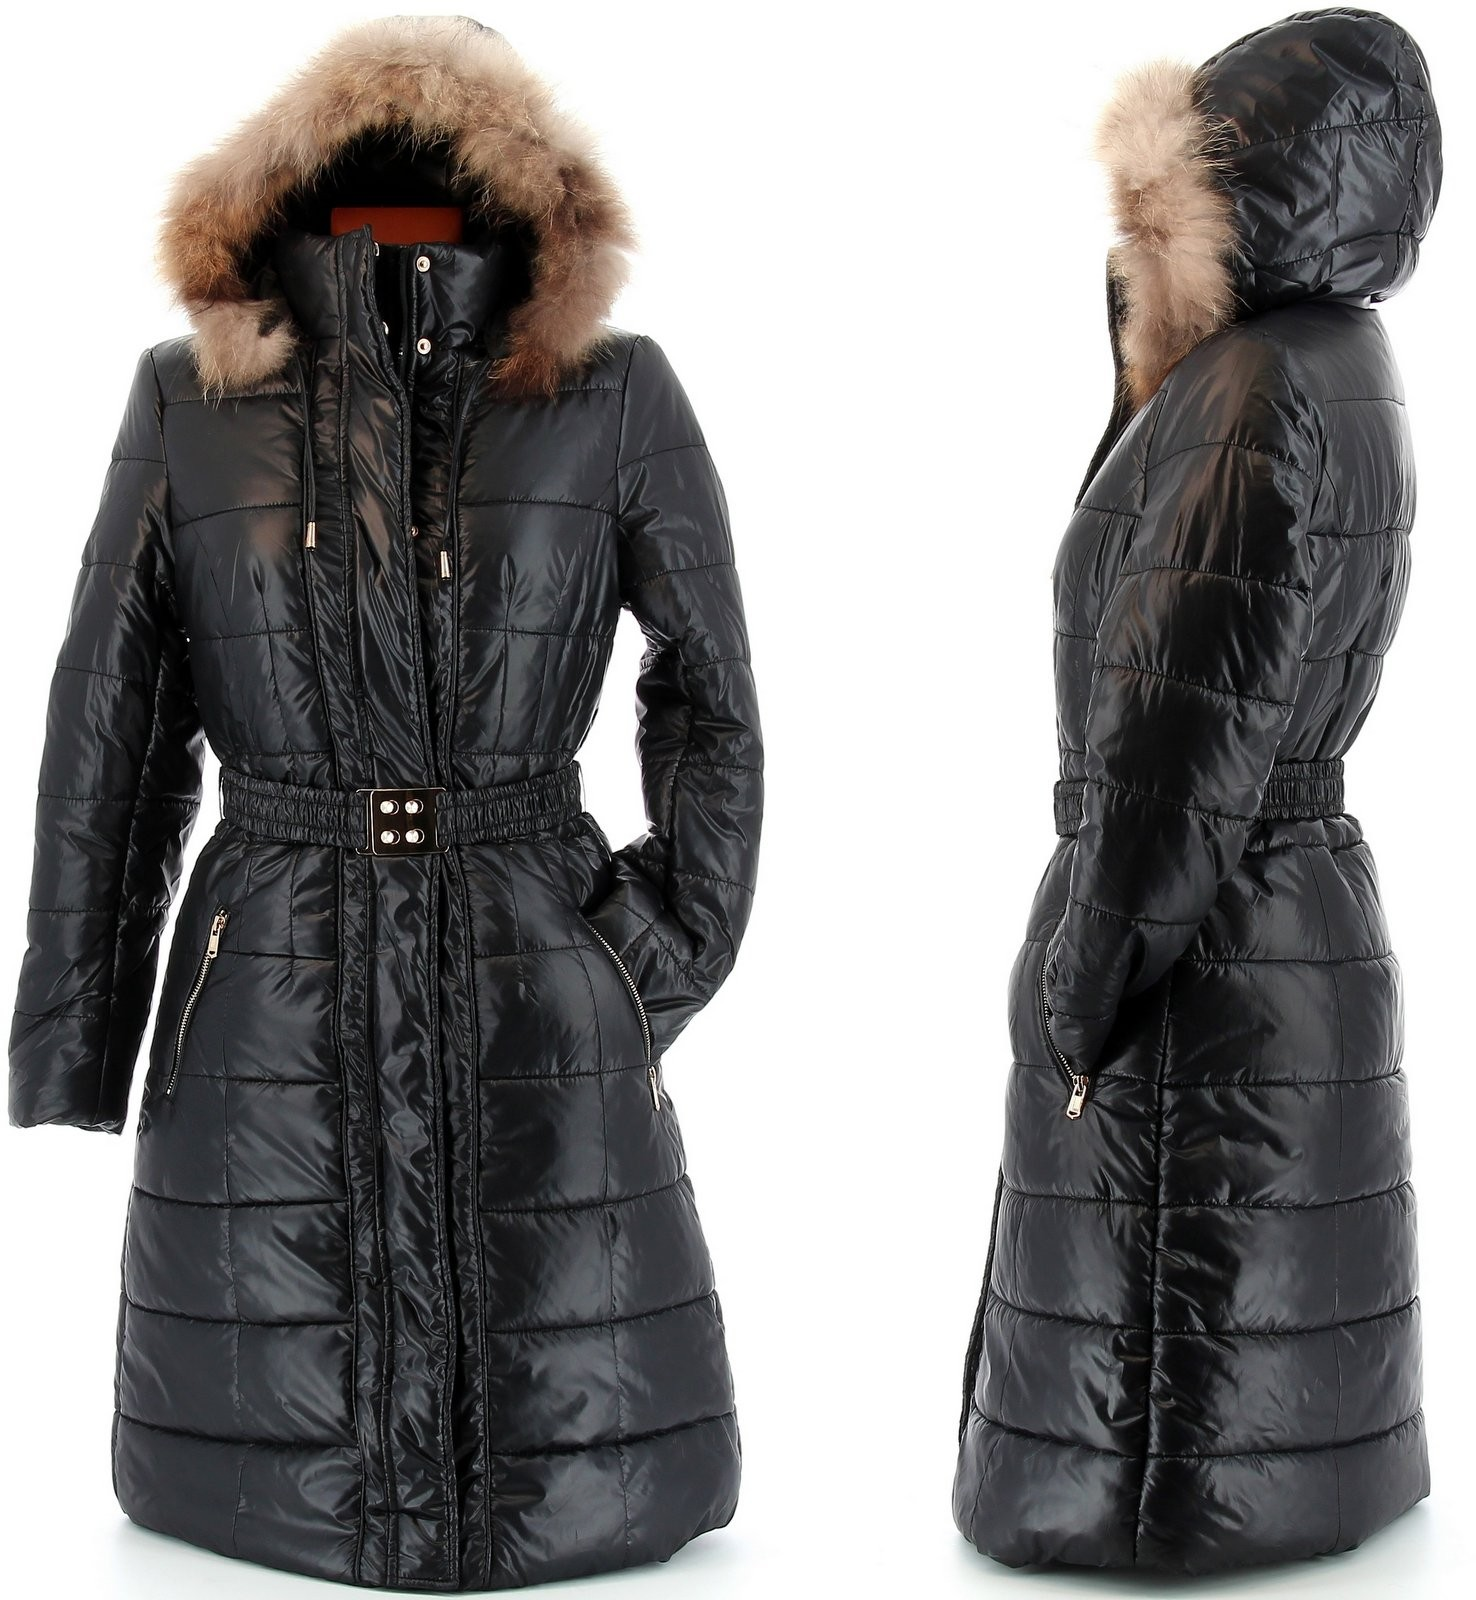 doudoune longue fourrure manteau parka capuche axelle noir. Black Bedroom Furniture Sets. Home Design Ideas